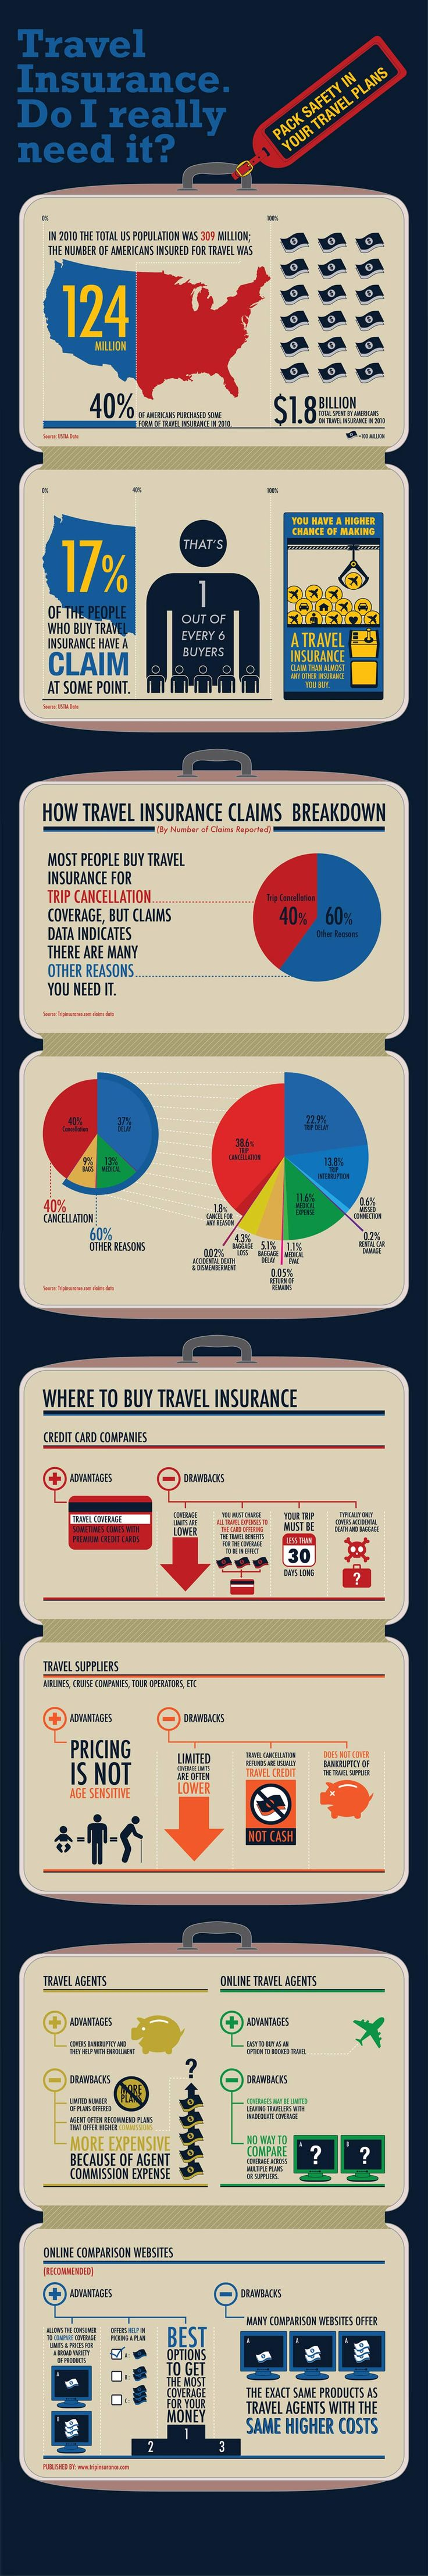 Do I Really Need Travel Insurance?  -- Many people ponder the value of travel insurance, until they really need it. One large claim, and they will never travel without it. We pulled together some statistics to show just what your chances are of making a claim on a travel insurance policy, and what kind of claims are typically filed. Most people buy travel insurance for trip cancellation coverage, but the claims data shows there are many other reasons you should buy travel insurance.